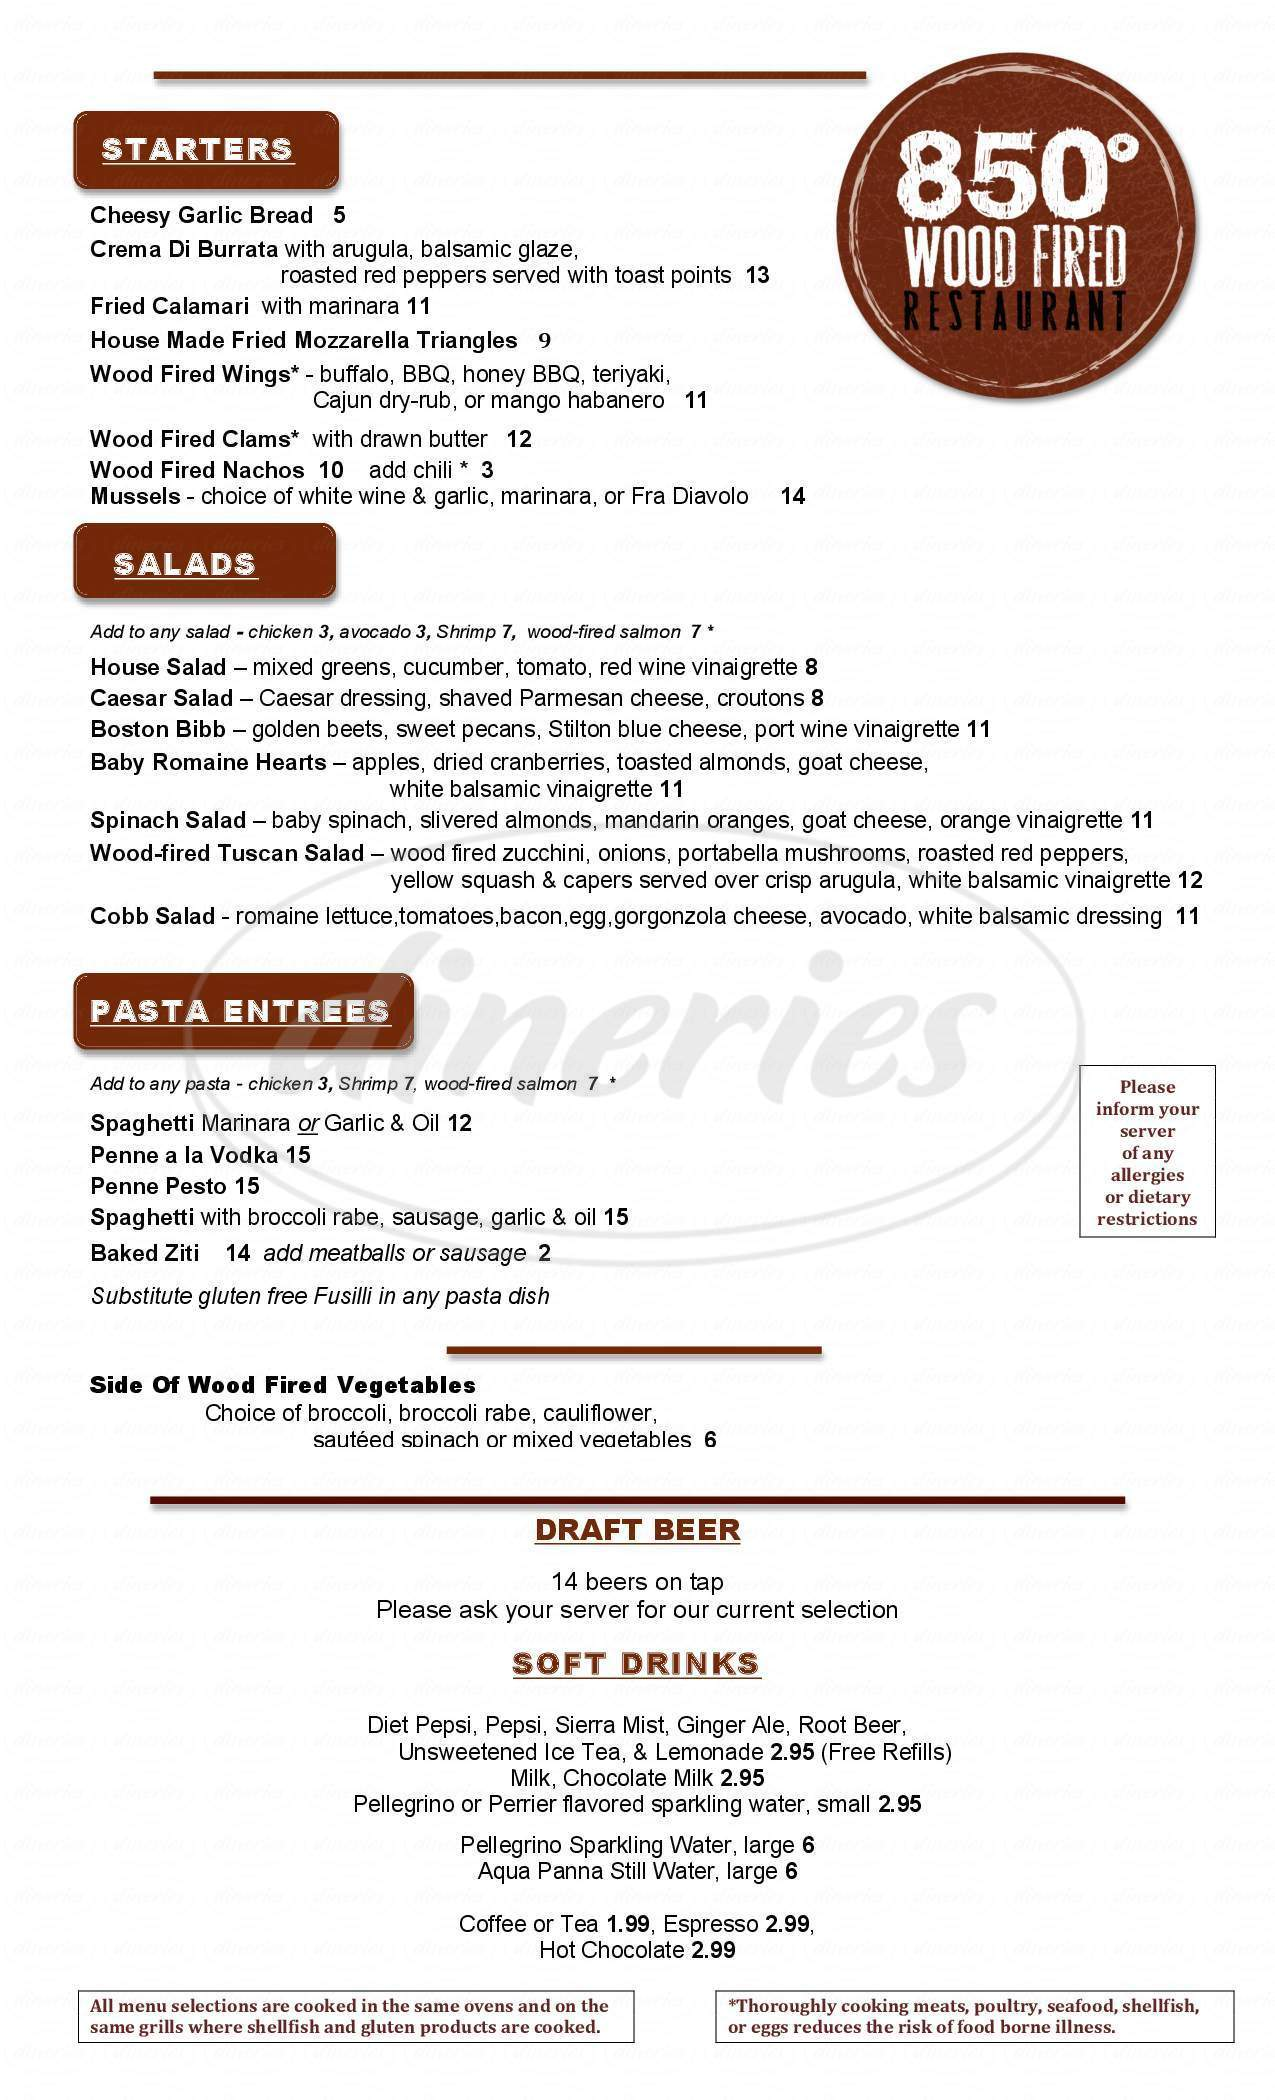 menu for 850 Wood Fired Pizza